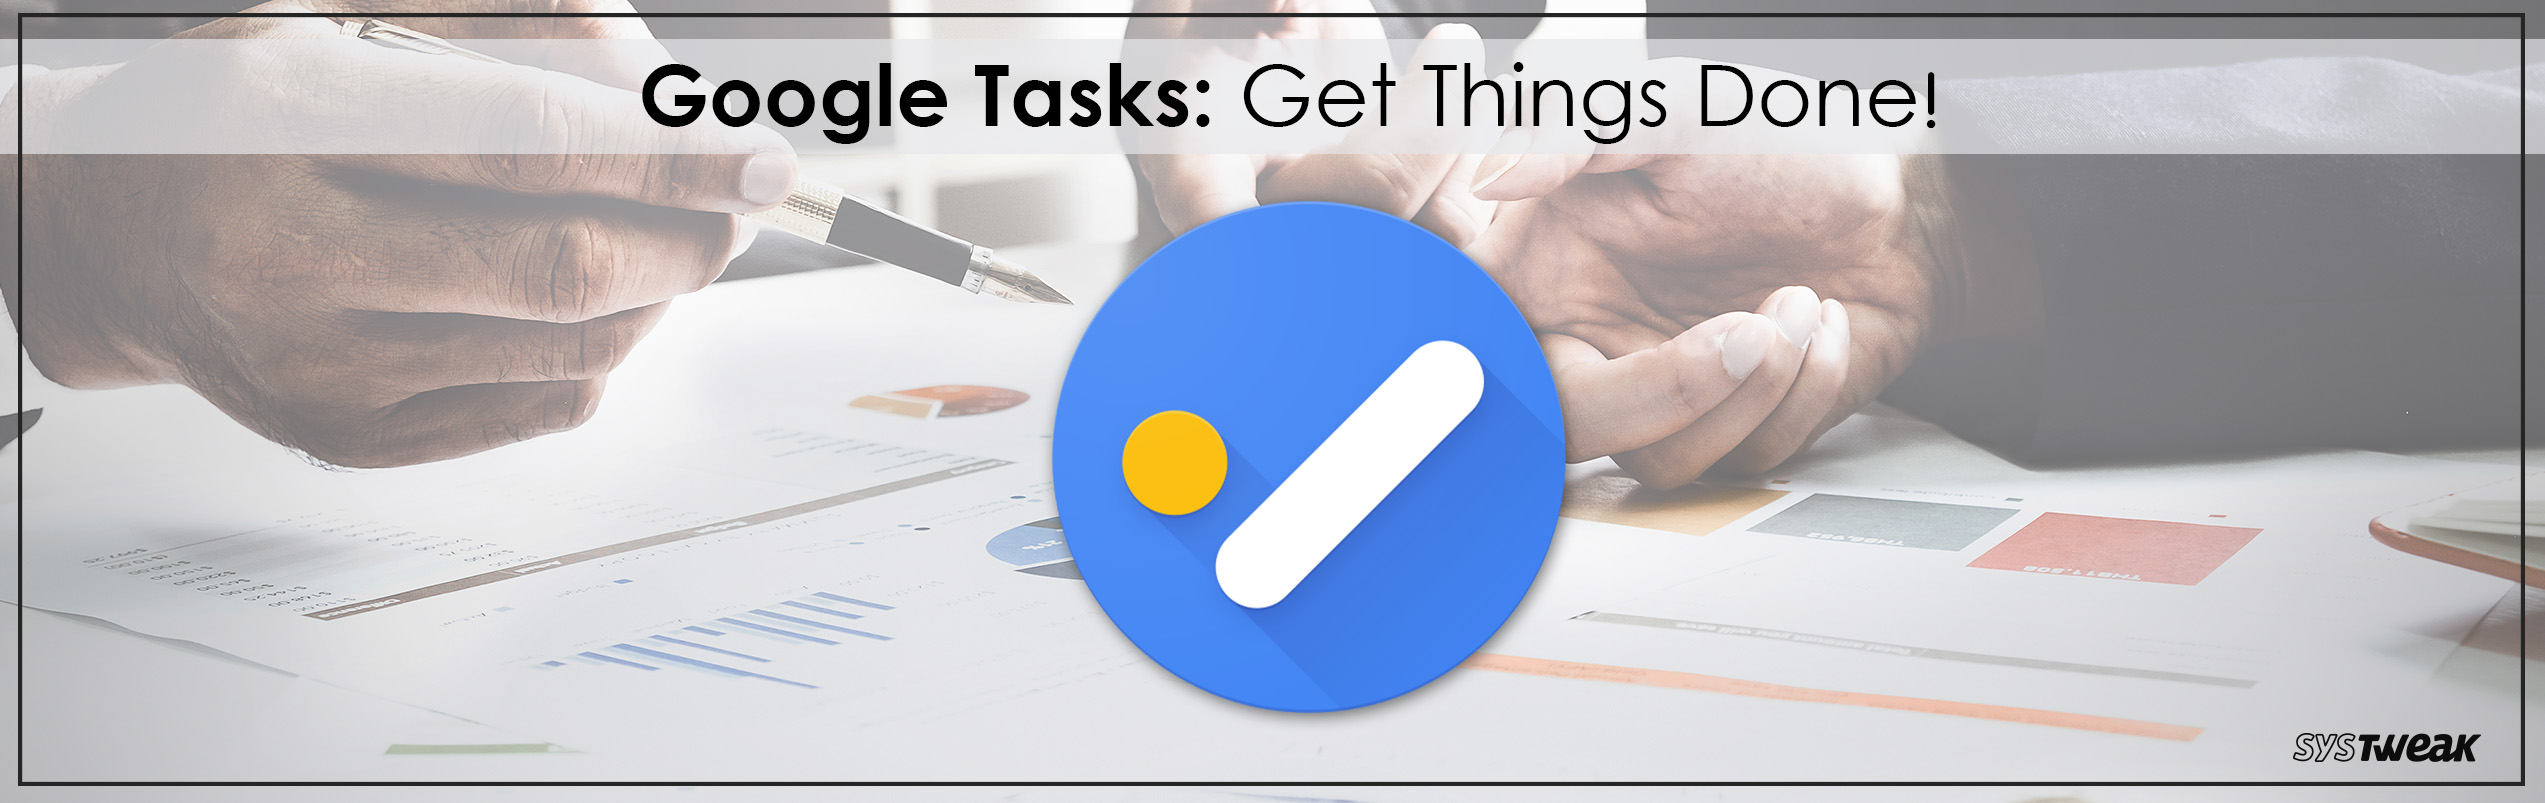 All You Need To Know About Google's New Tasks App